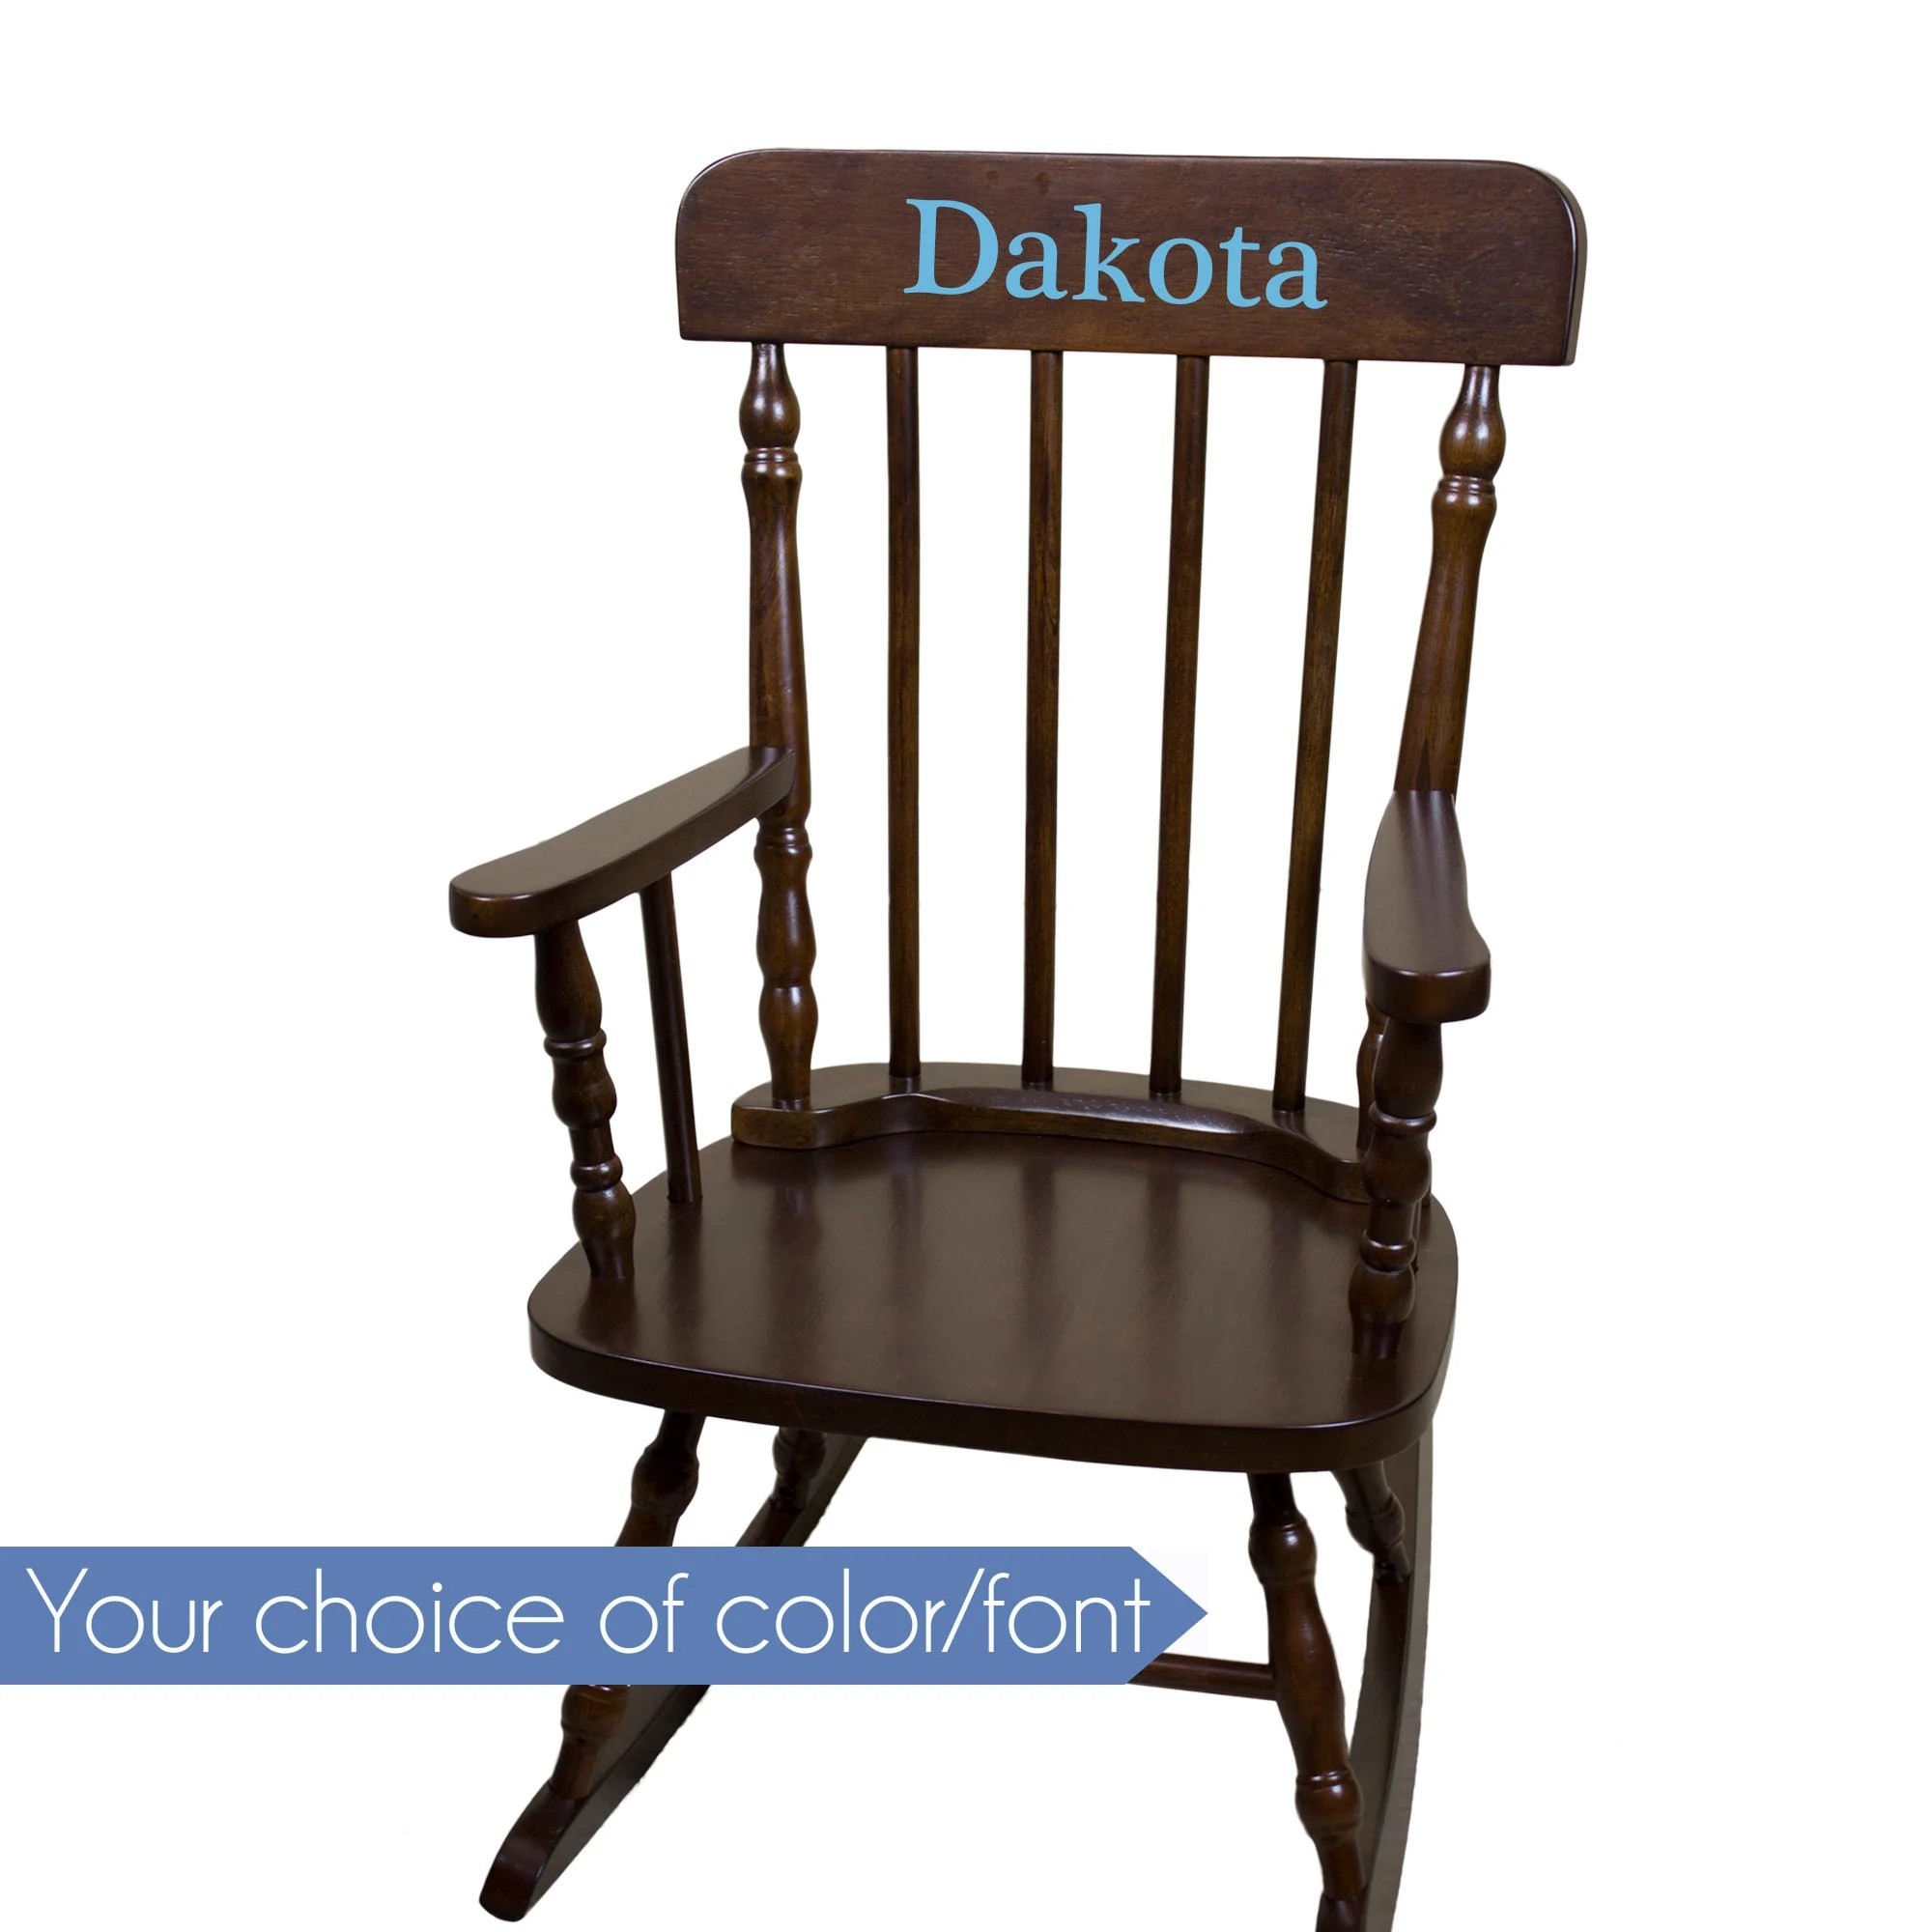 Child Wooden Rocking Chair Personalized Child S Rocking Chair With Just Name Nursery Furniture Girl Boy Kids Custom Spindal Rocking Chairs Rocker Cherry Wood Spin Esp